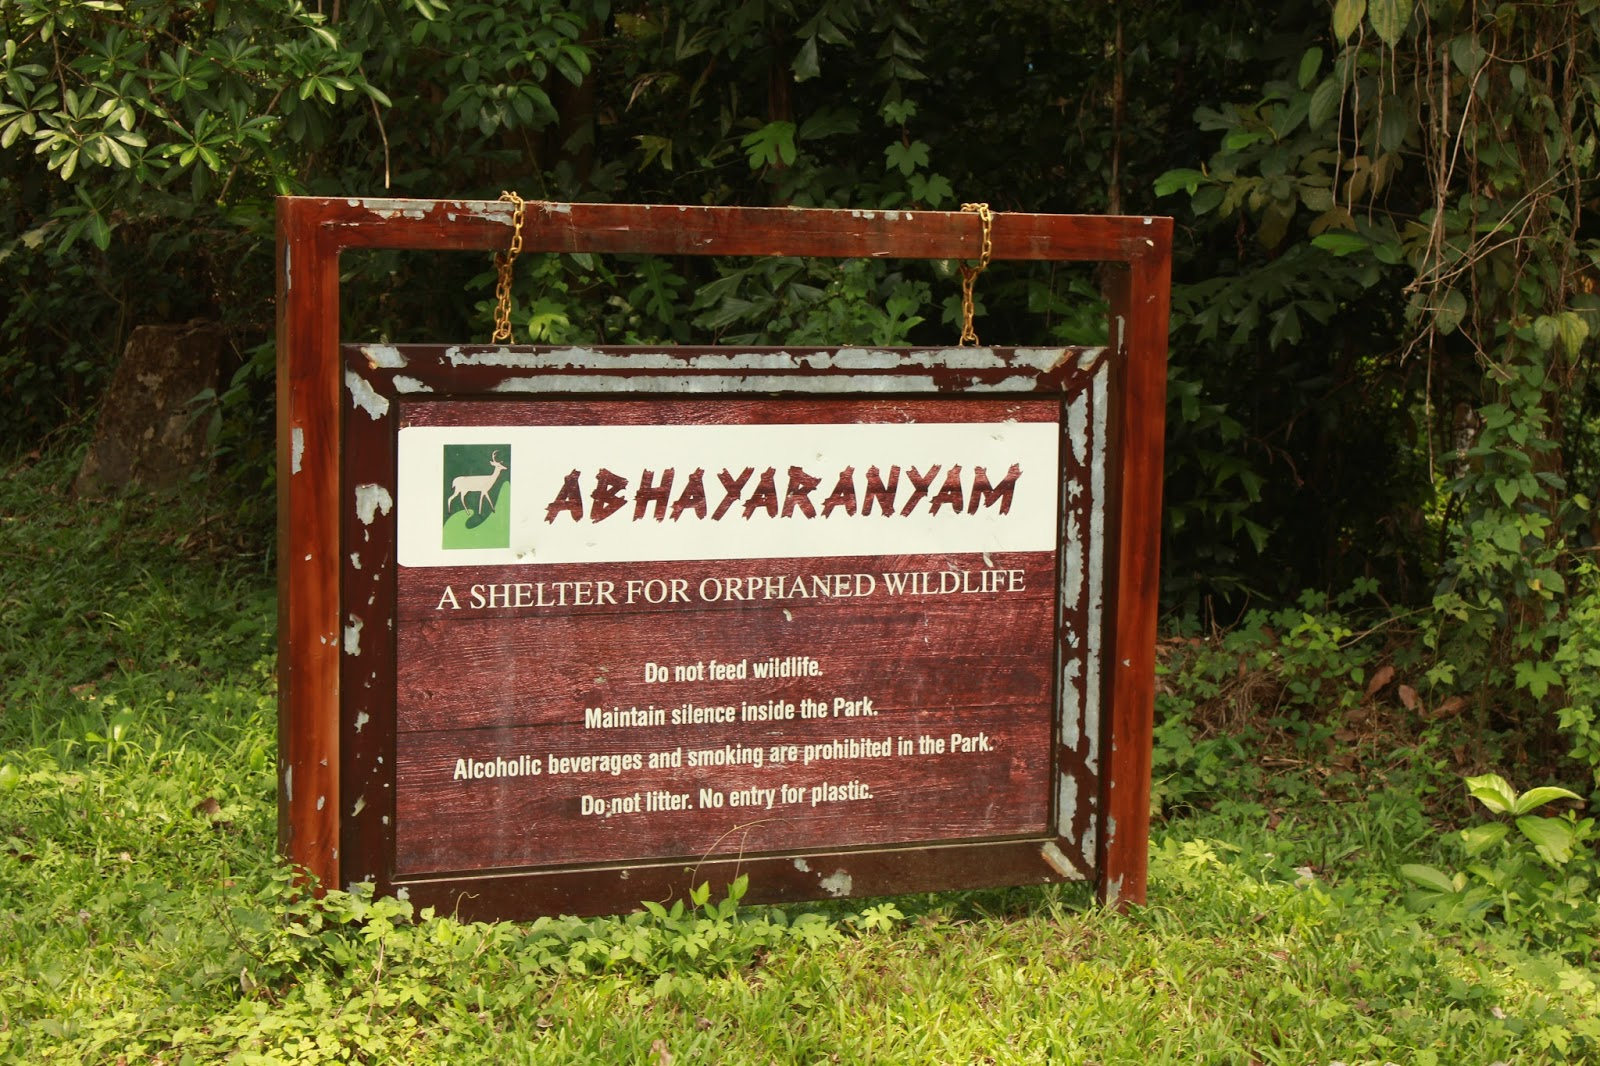 Best Zoo in Kerala-Abhayaranyam Zoo in Ernakulam